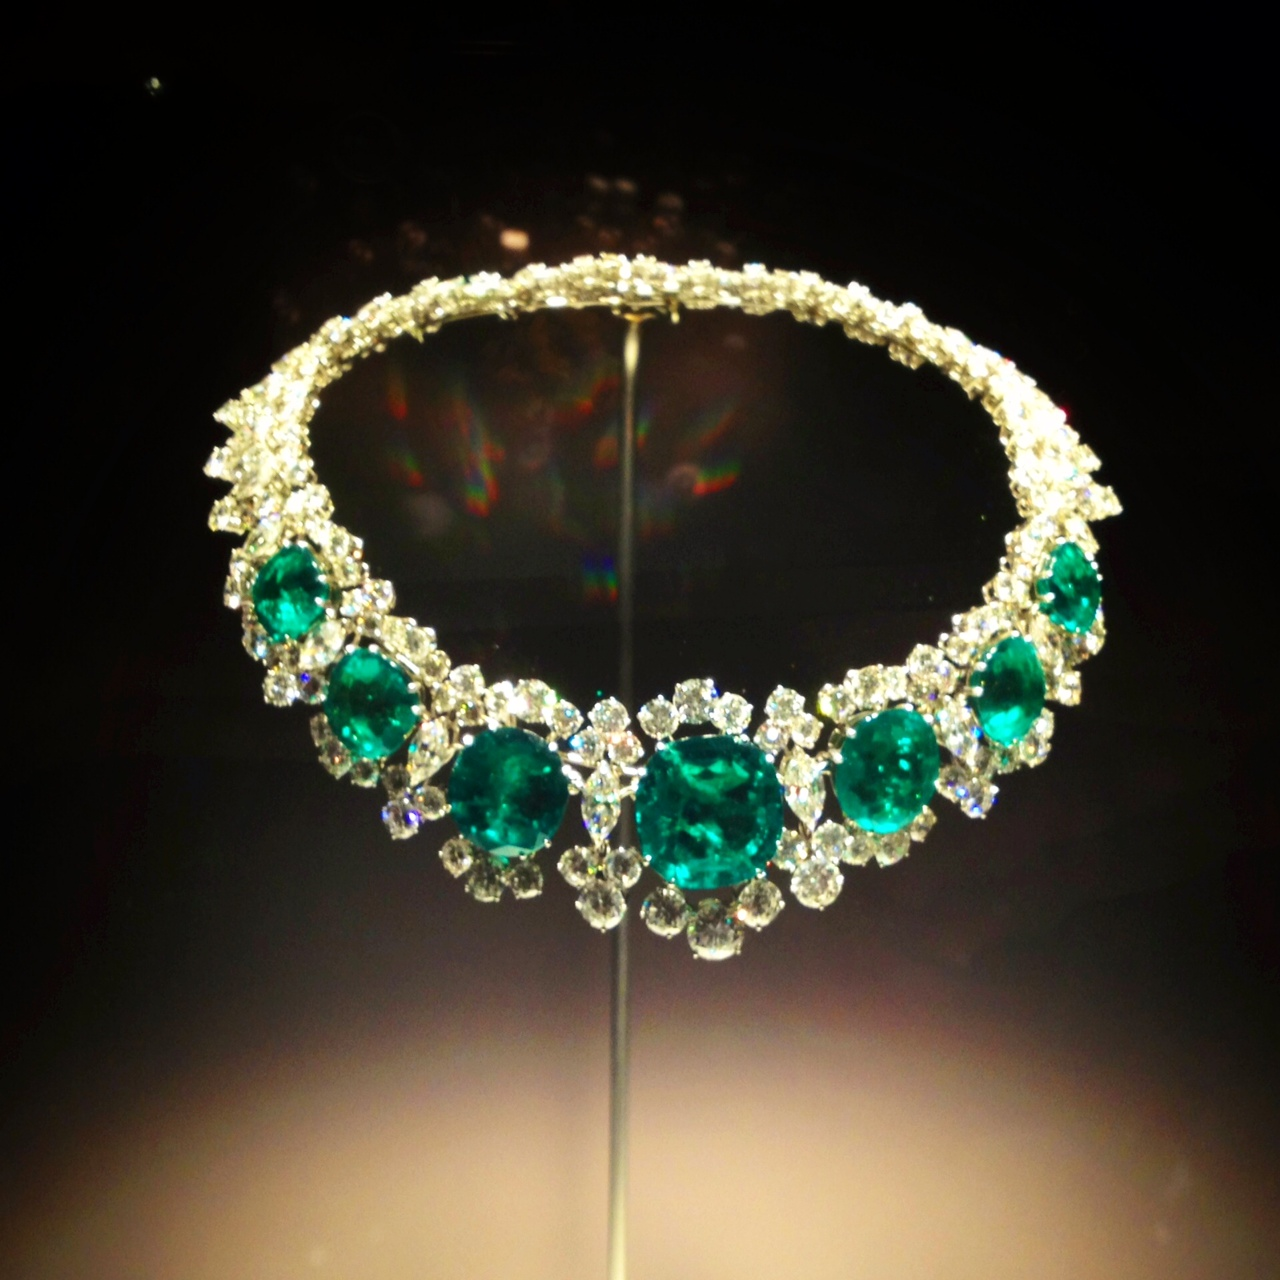 Bulgari emerald necklace